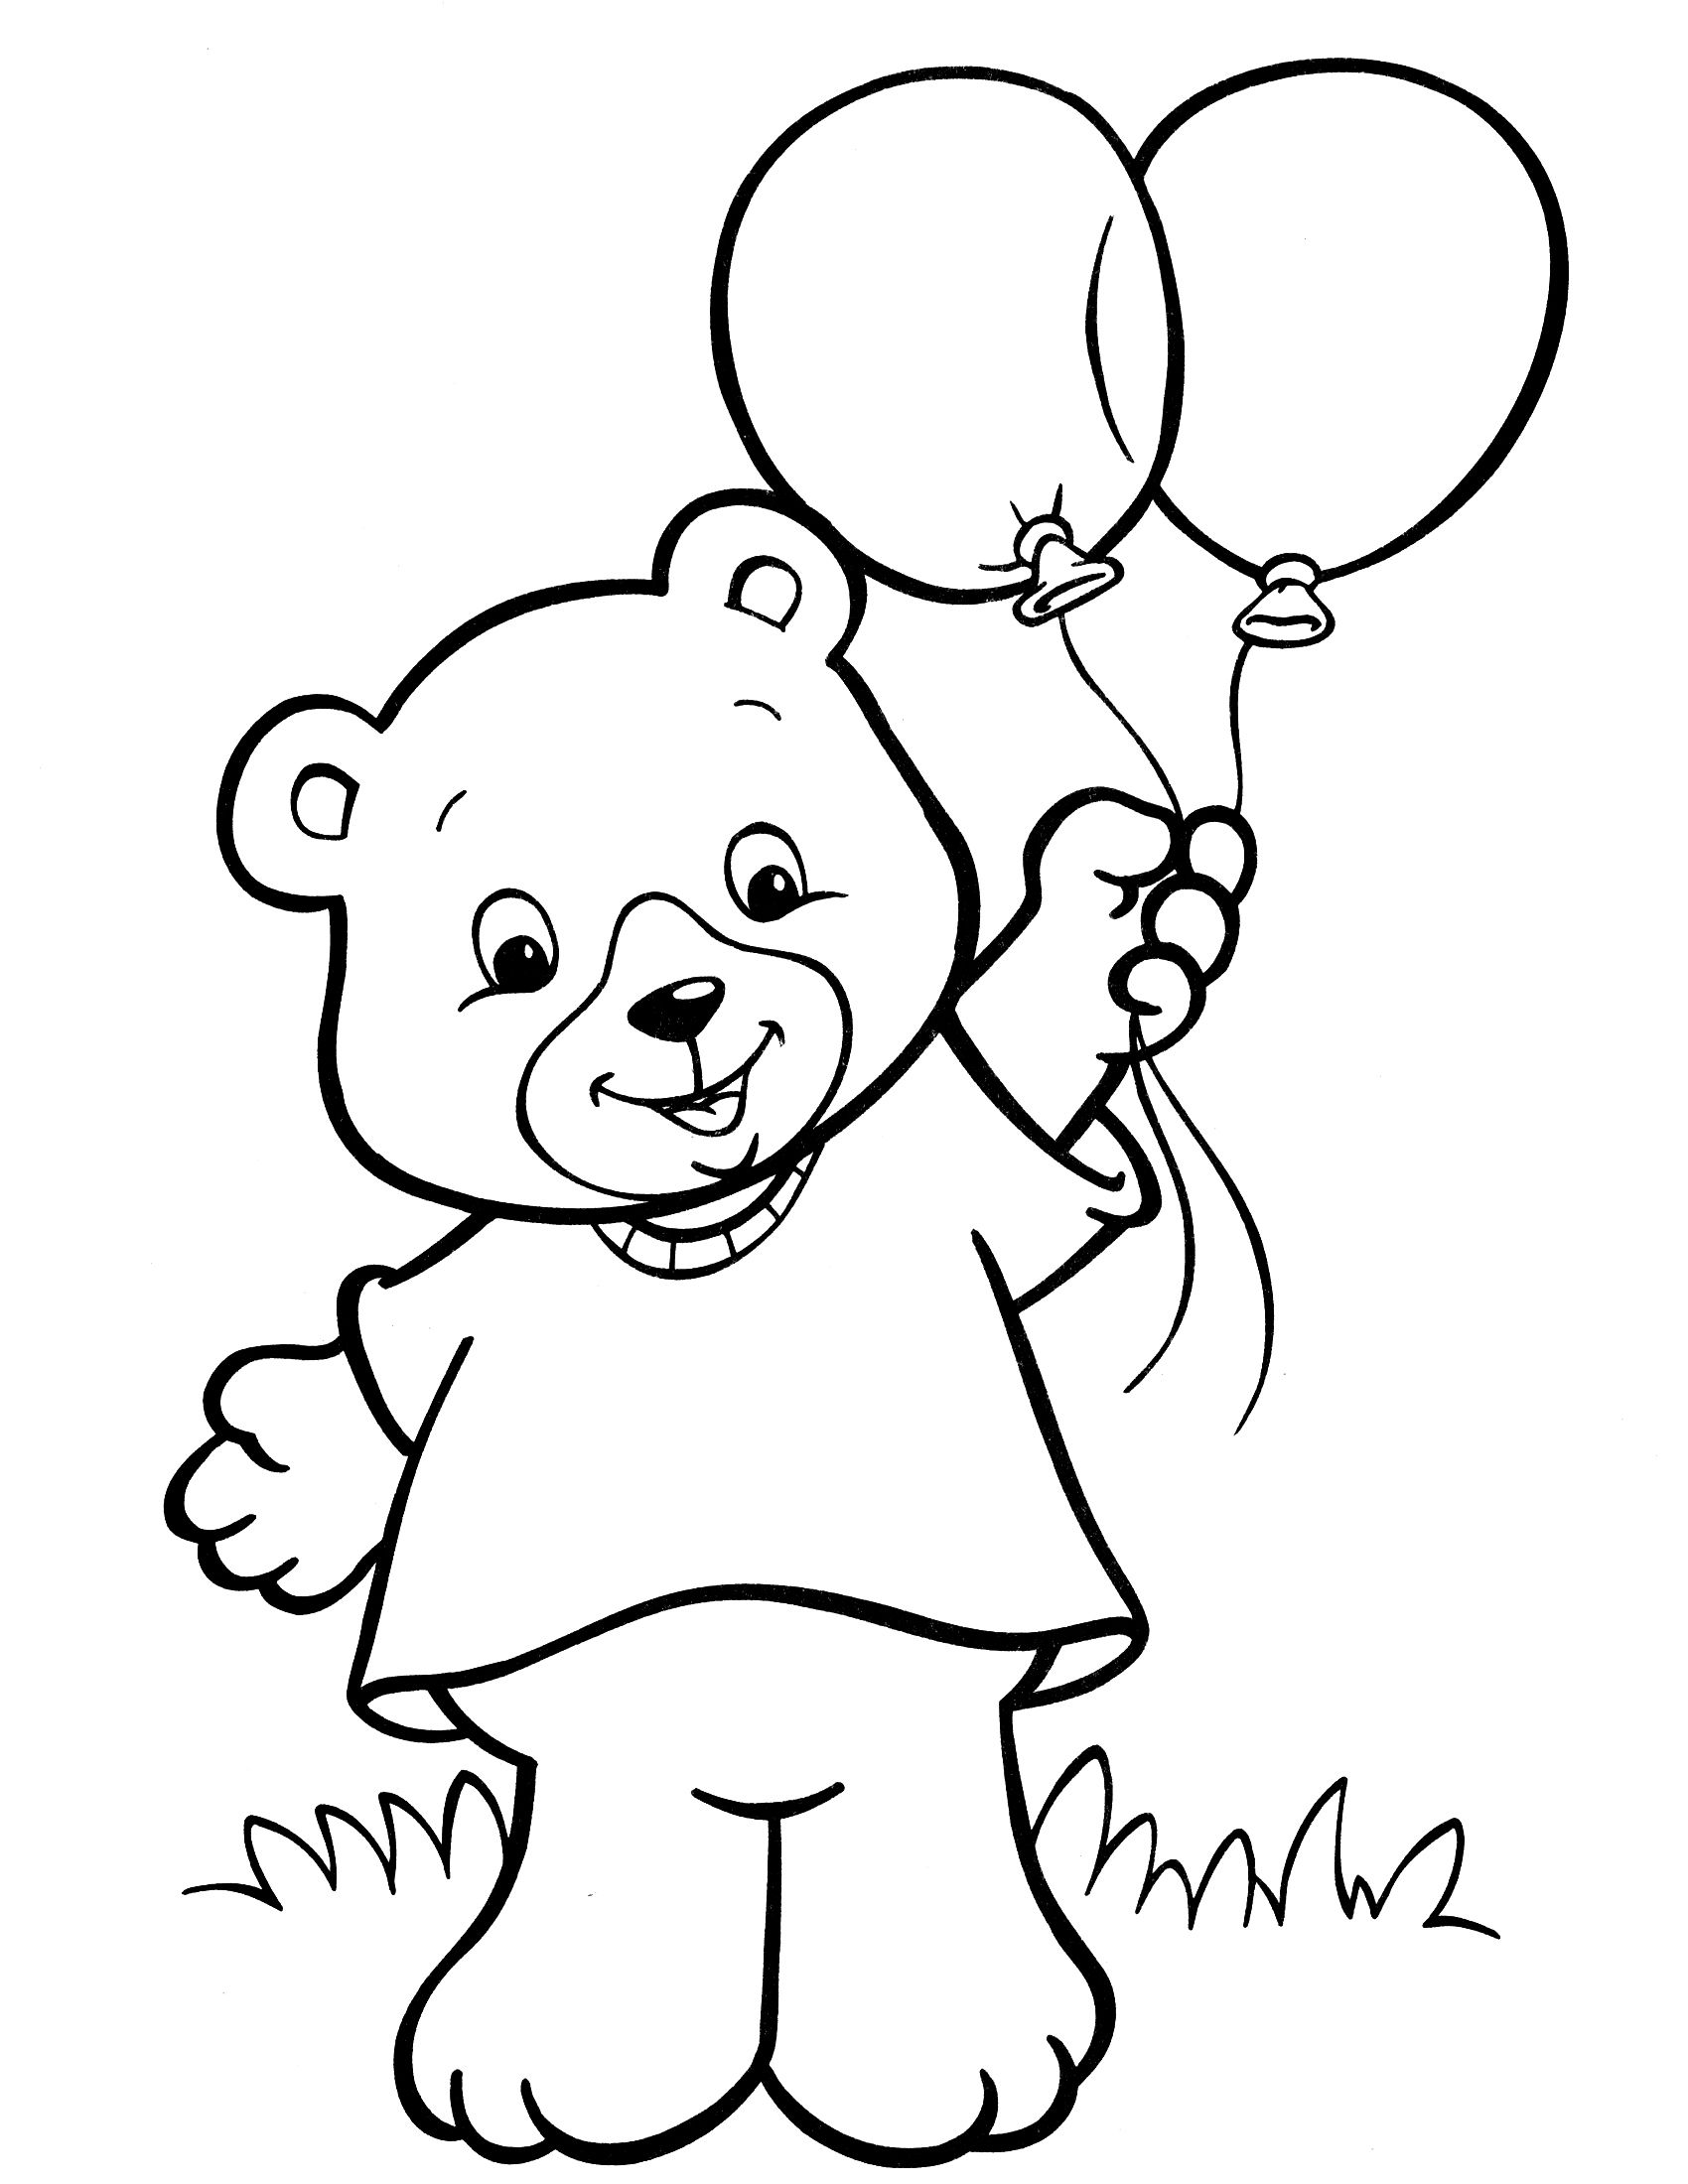 crayola coloring pages Crayola Coloring Page 34